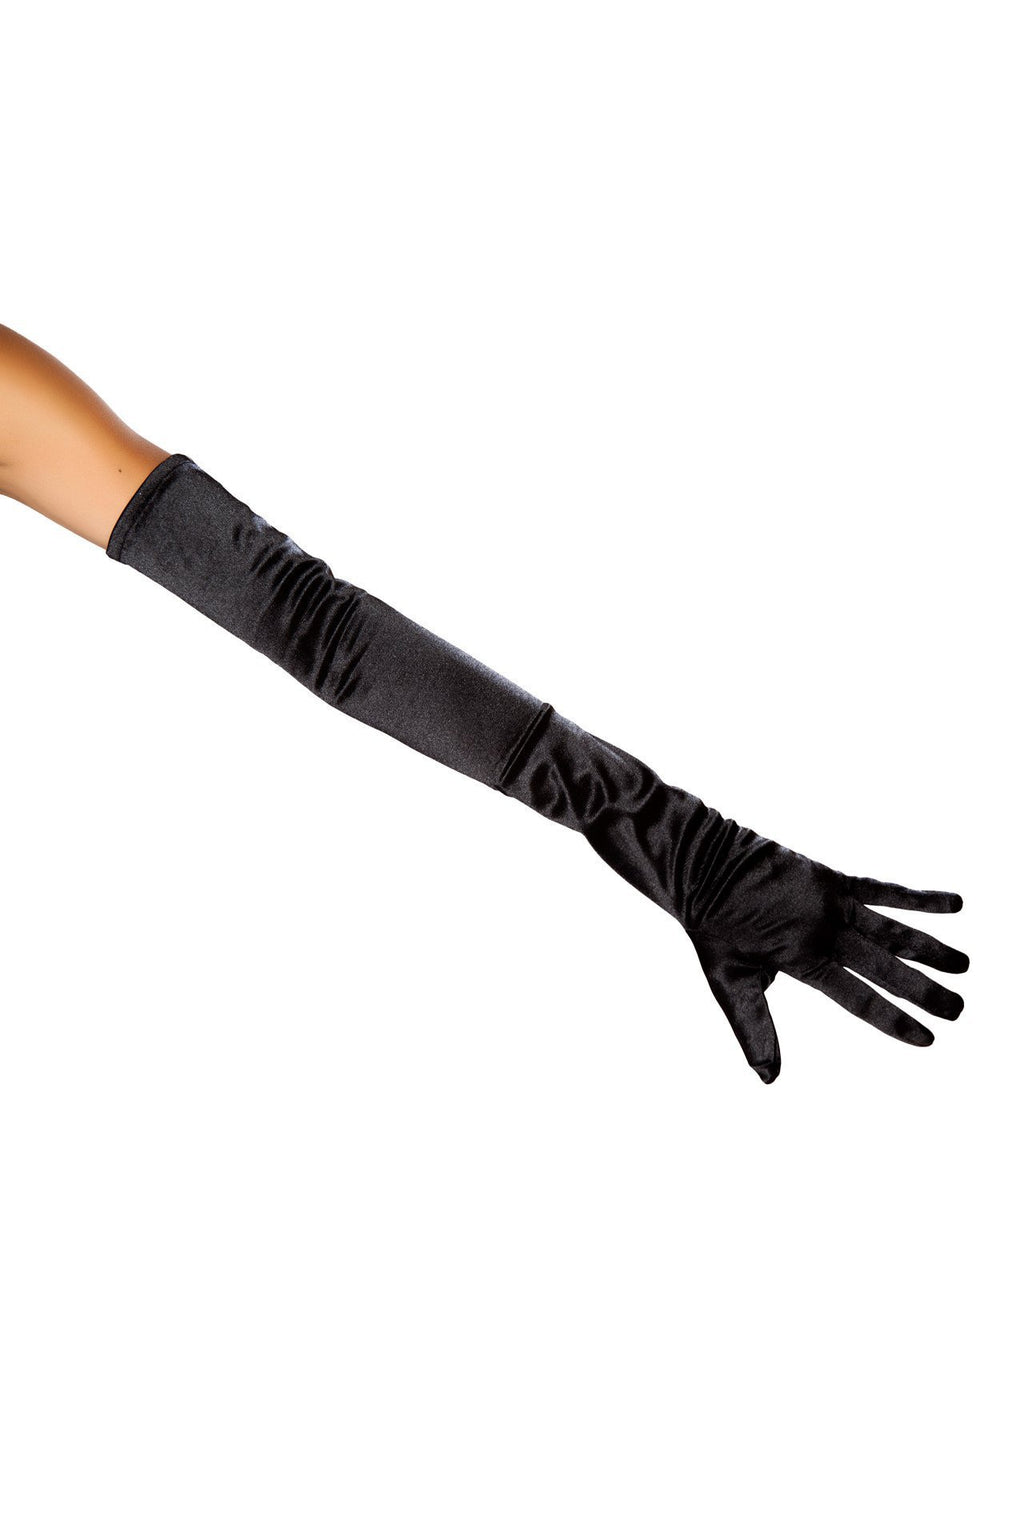 10104 - Stretch Satin Gloves - RaveSQUAD